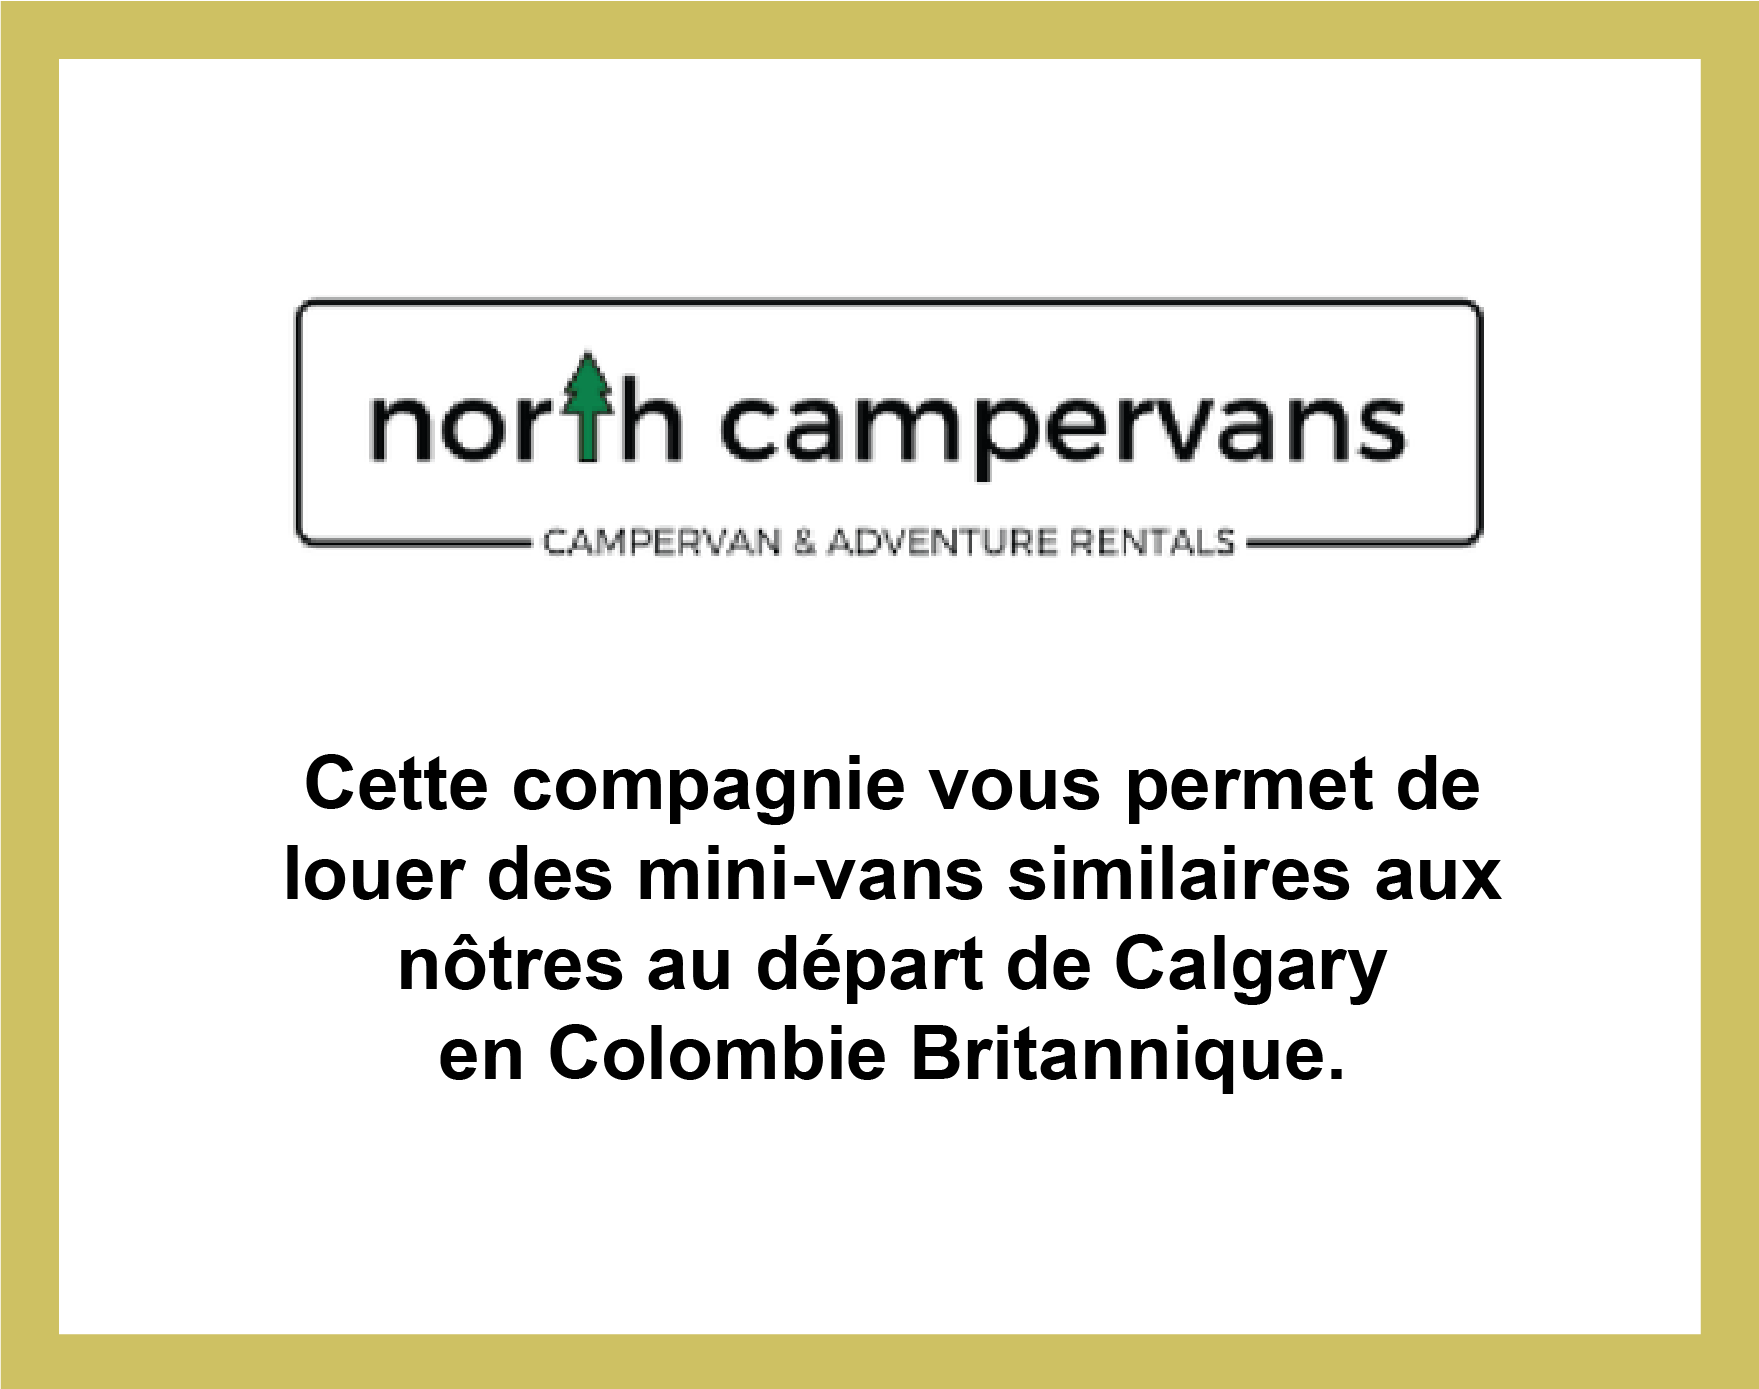 Partenariat avec North Campervans, locations de mini-vans en Colombie Britannique